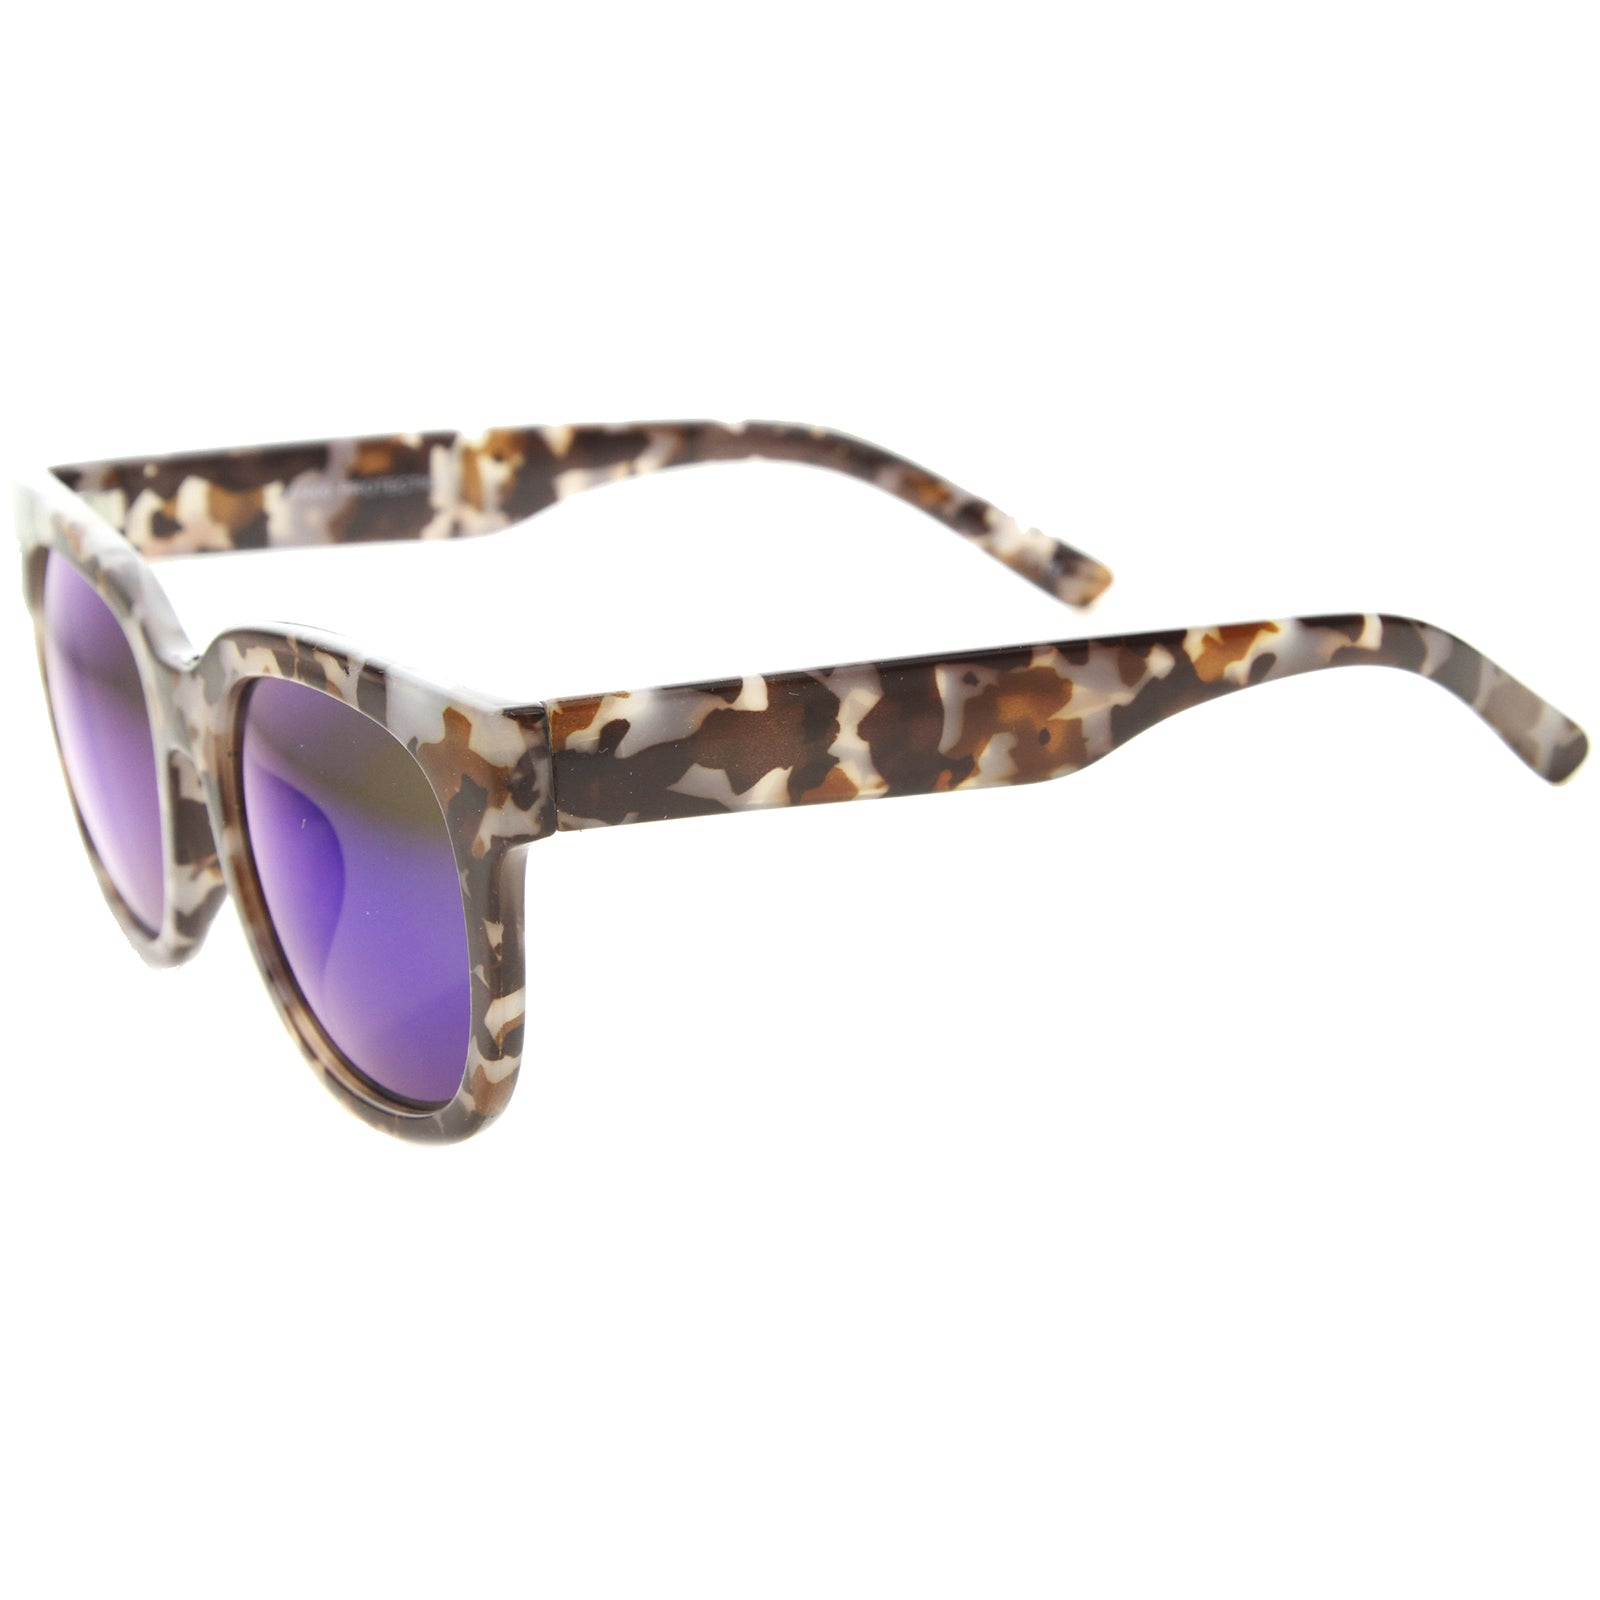 Womens Cat Eye Sunglasses With UV400 Protected Mirrored Lens - sunglass.la - 3